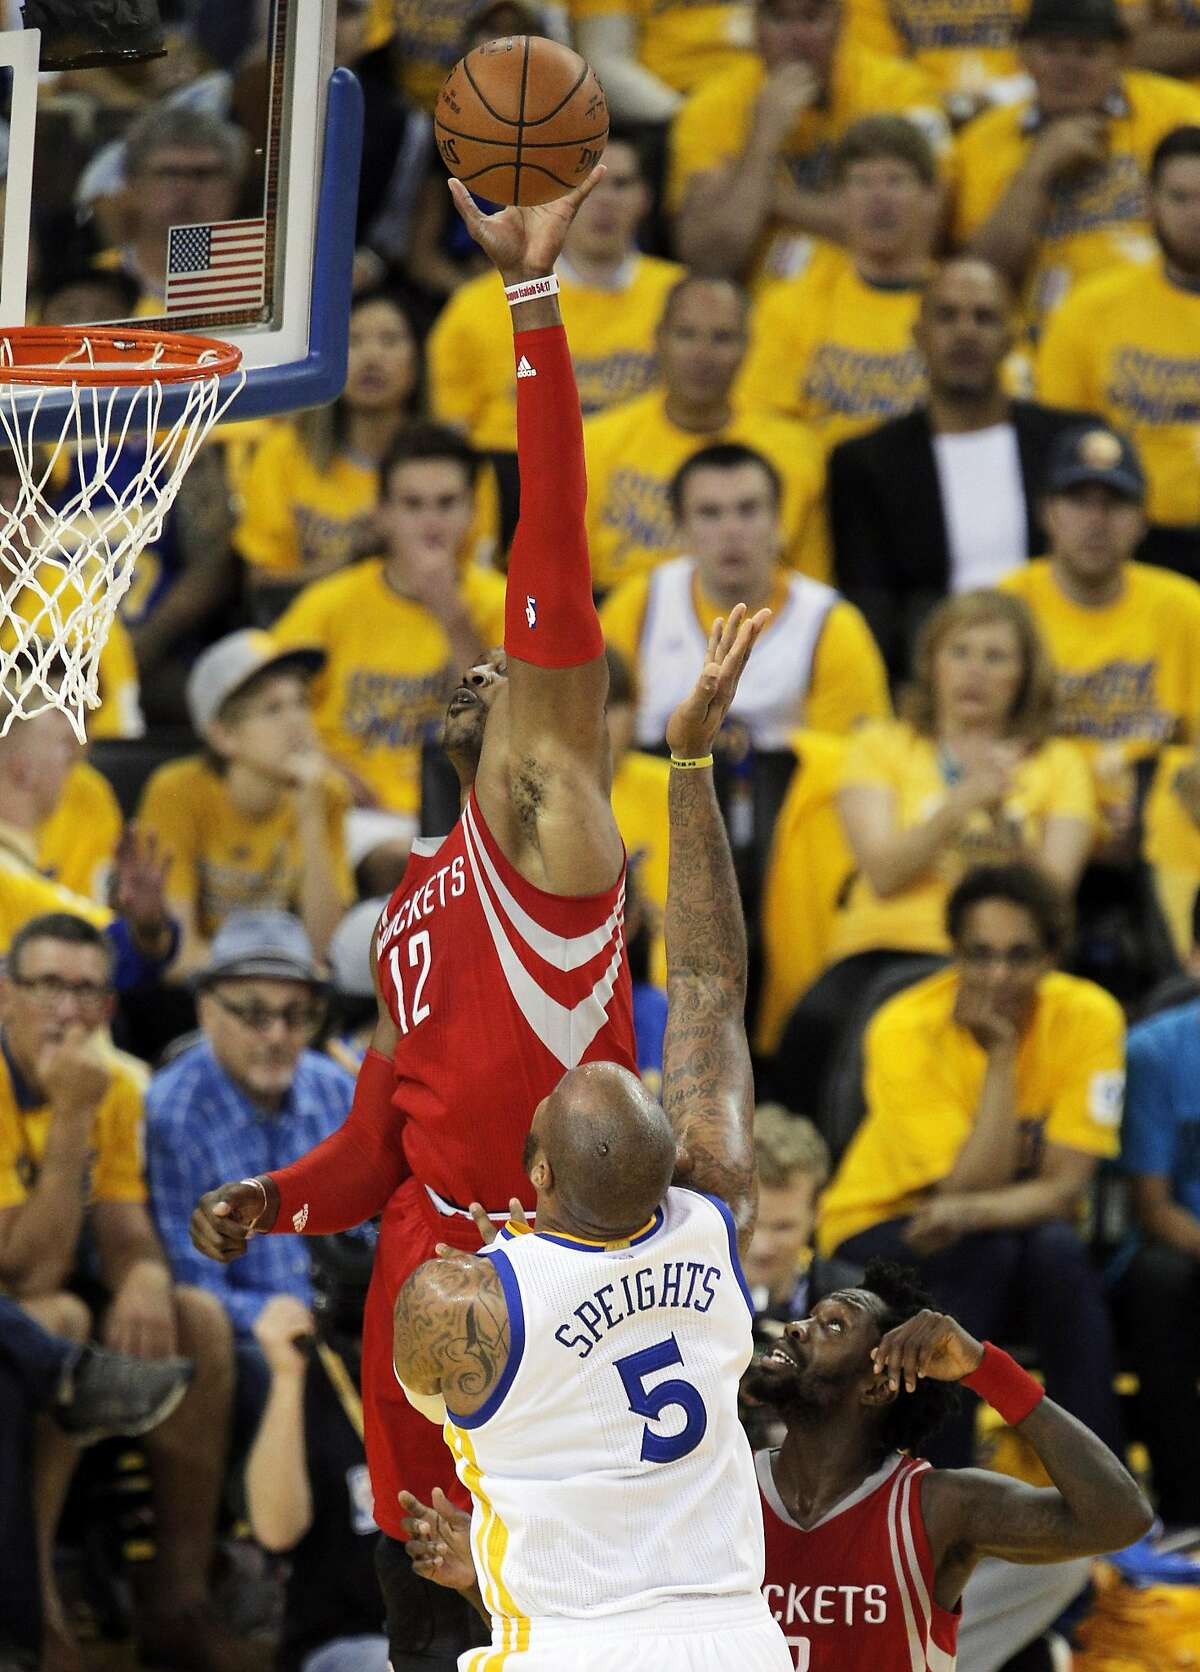 Dwight Howard (12) bats away a shot by Marreese Speights (5) but the basket was called good in the first half as the Golden State Warriors played the Houston Rockets in game 2 of the first round of the Western Conference Playoffs at Oracle Arena in Oakland, Calif., on Monday, April 18, 2016.